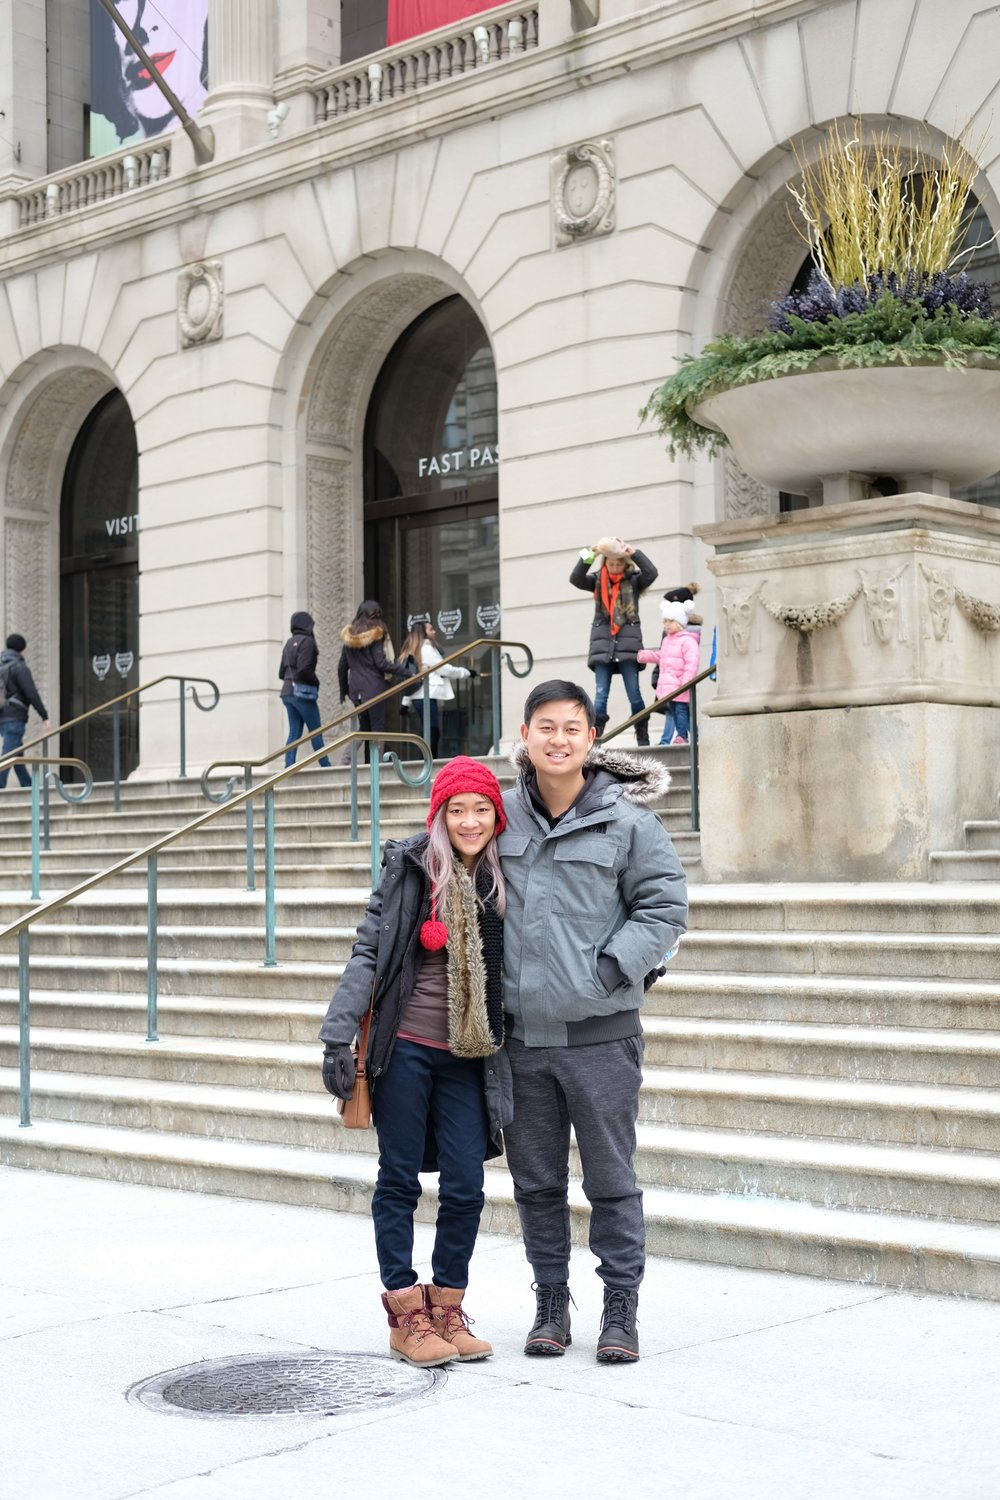 Us in front of The Art Institute of Chicago